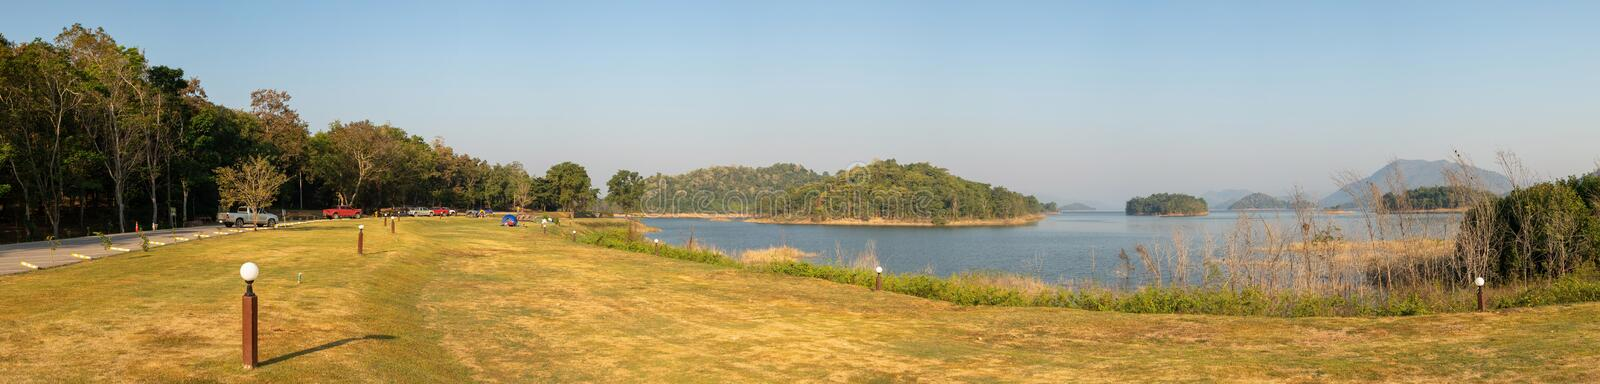 Panorama image of Tropical landscape view of Lake and Mountain at National Park. stock image